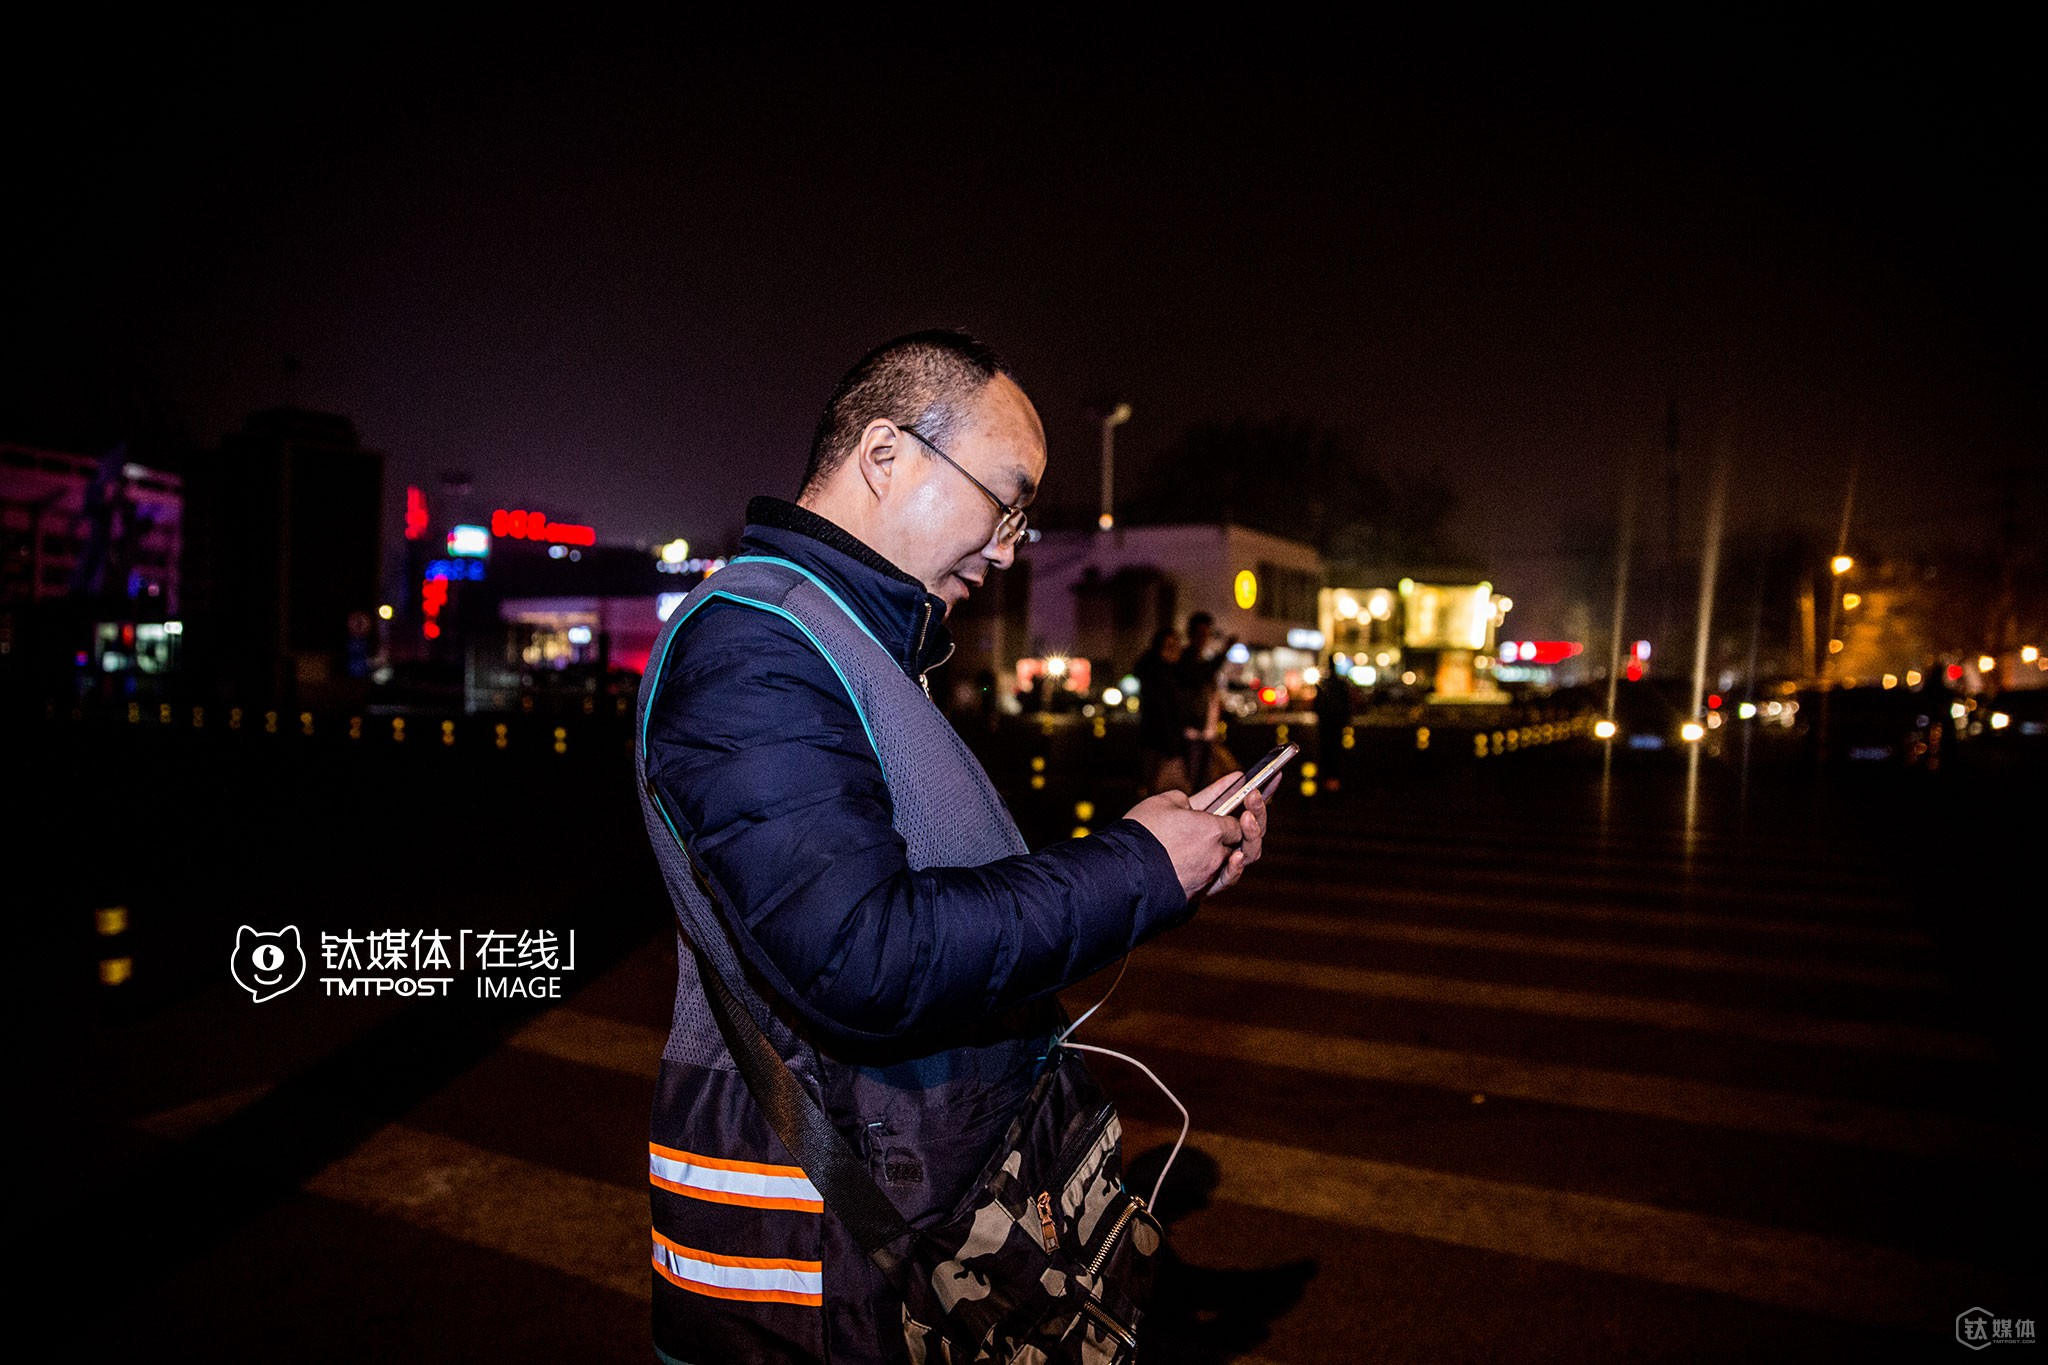 "It was 24:00 o'clock, Beijing. A part-time designated driver was getting prepared to go back home and searching in his smartphone to see which bus he should take. He's been working part-time as a designated driver for two months, only to make some extra money. ""It's already 24:00 o'clock, and I've got to go home and have a rest, since I still need to go to work tomorrow,"" he explained."